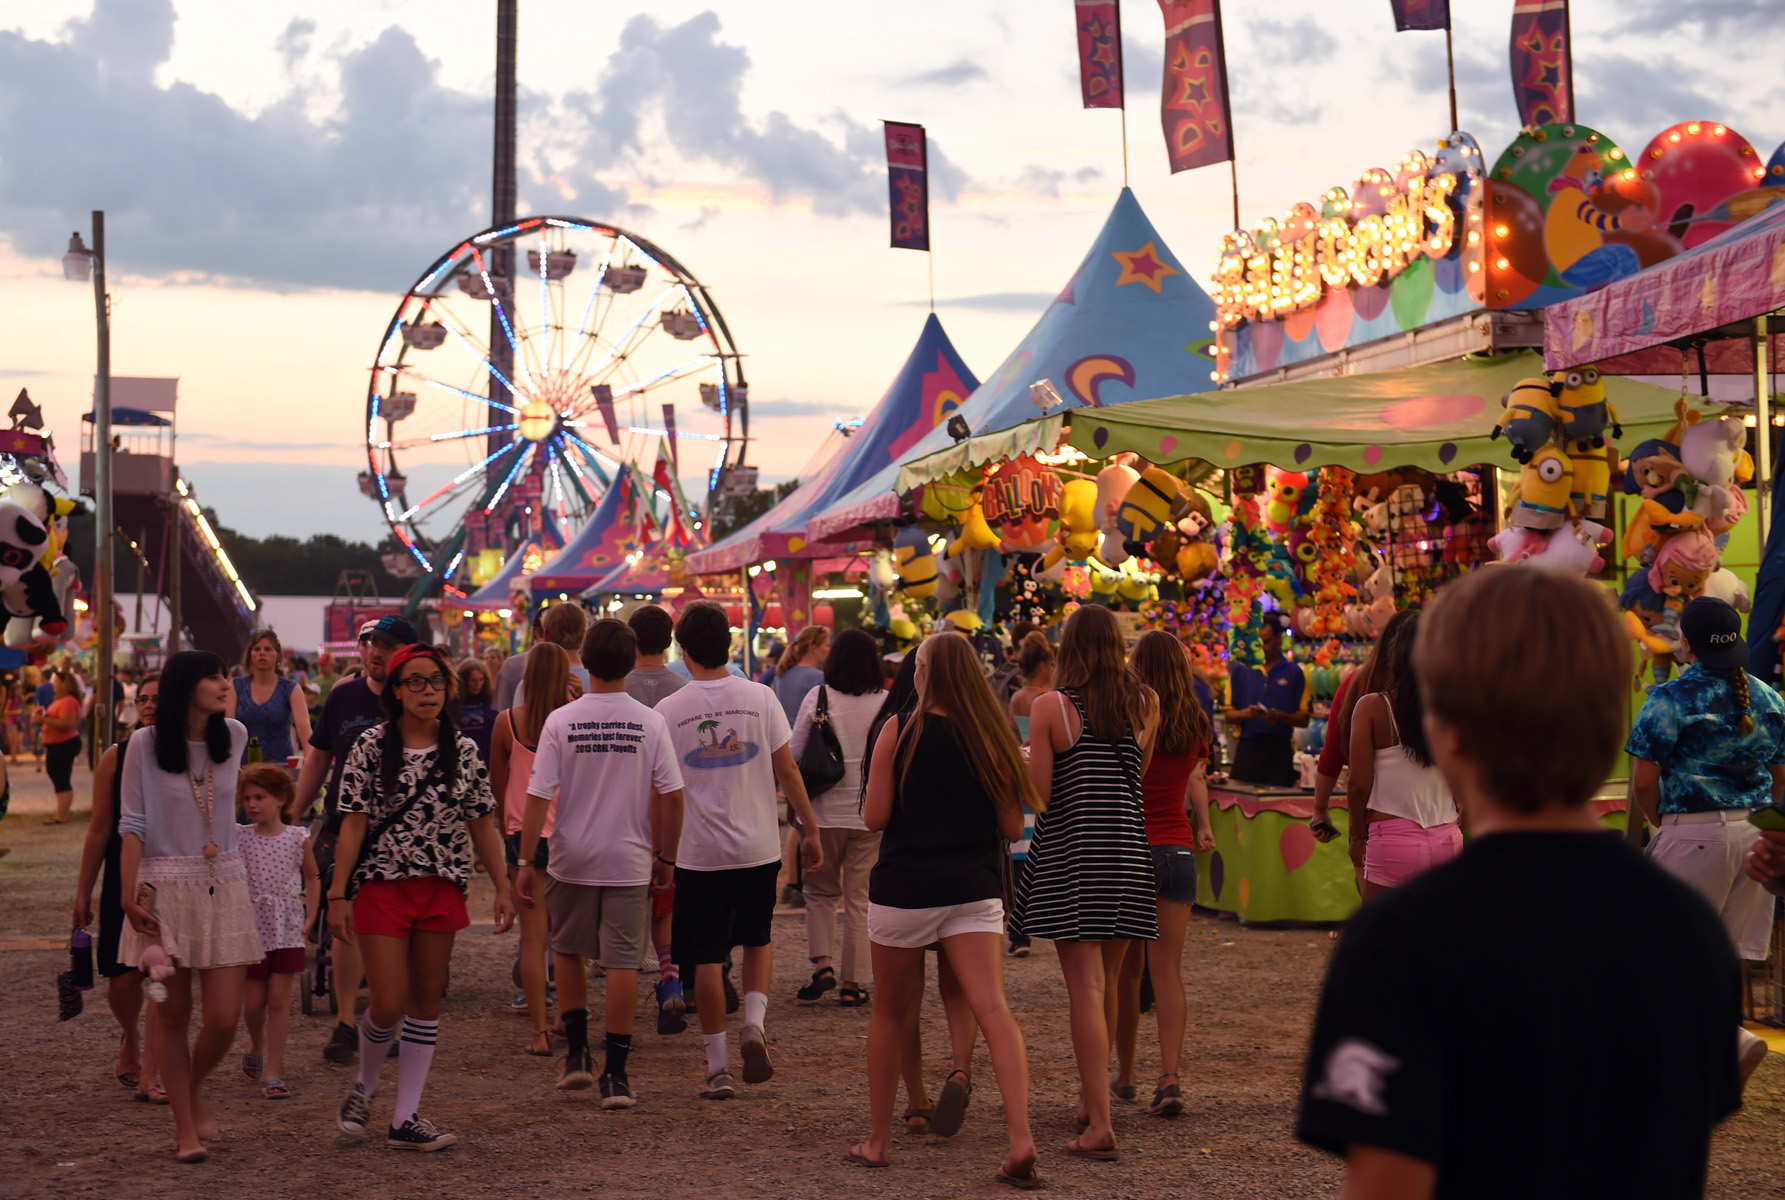 Best photos from the county fair season